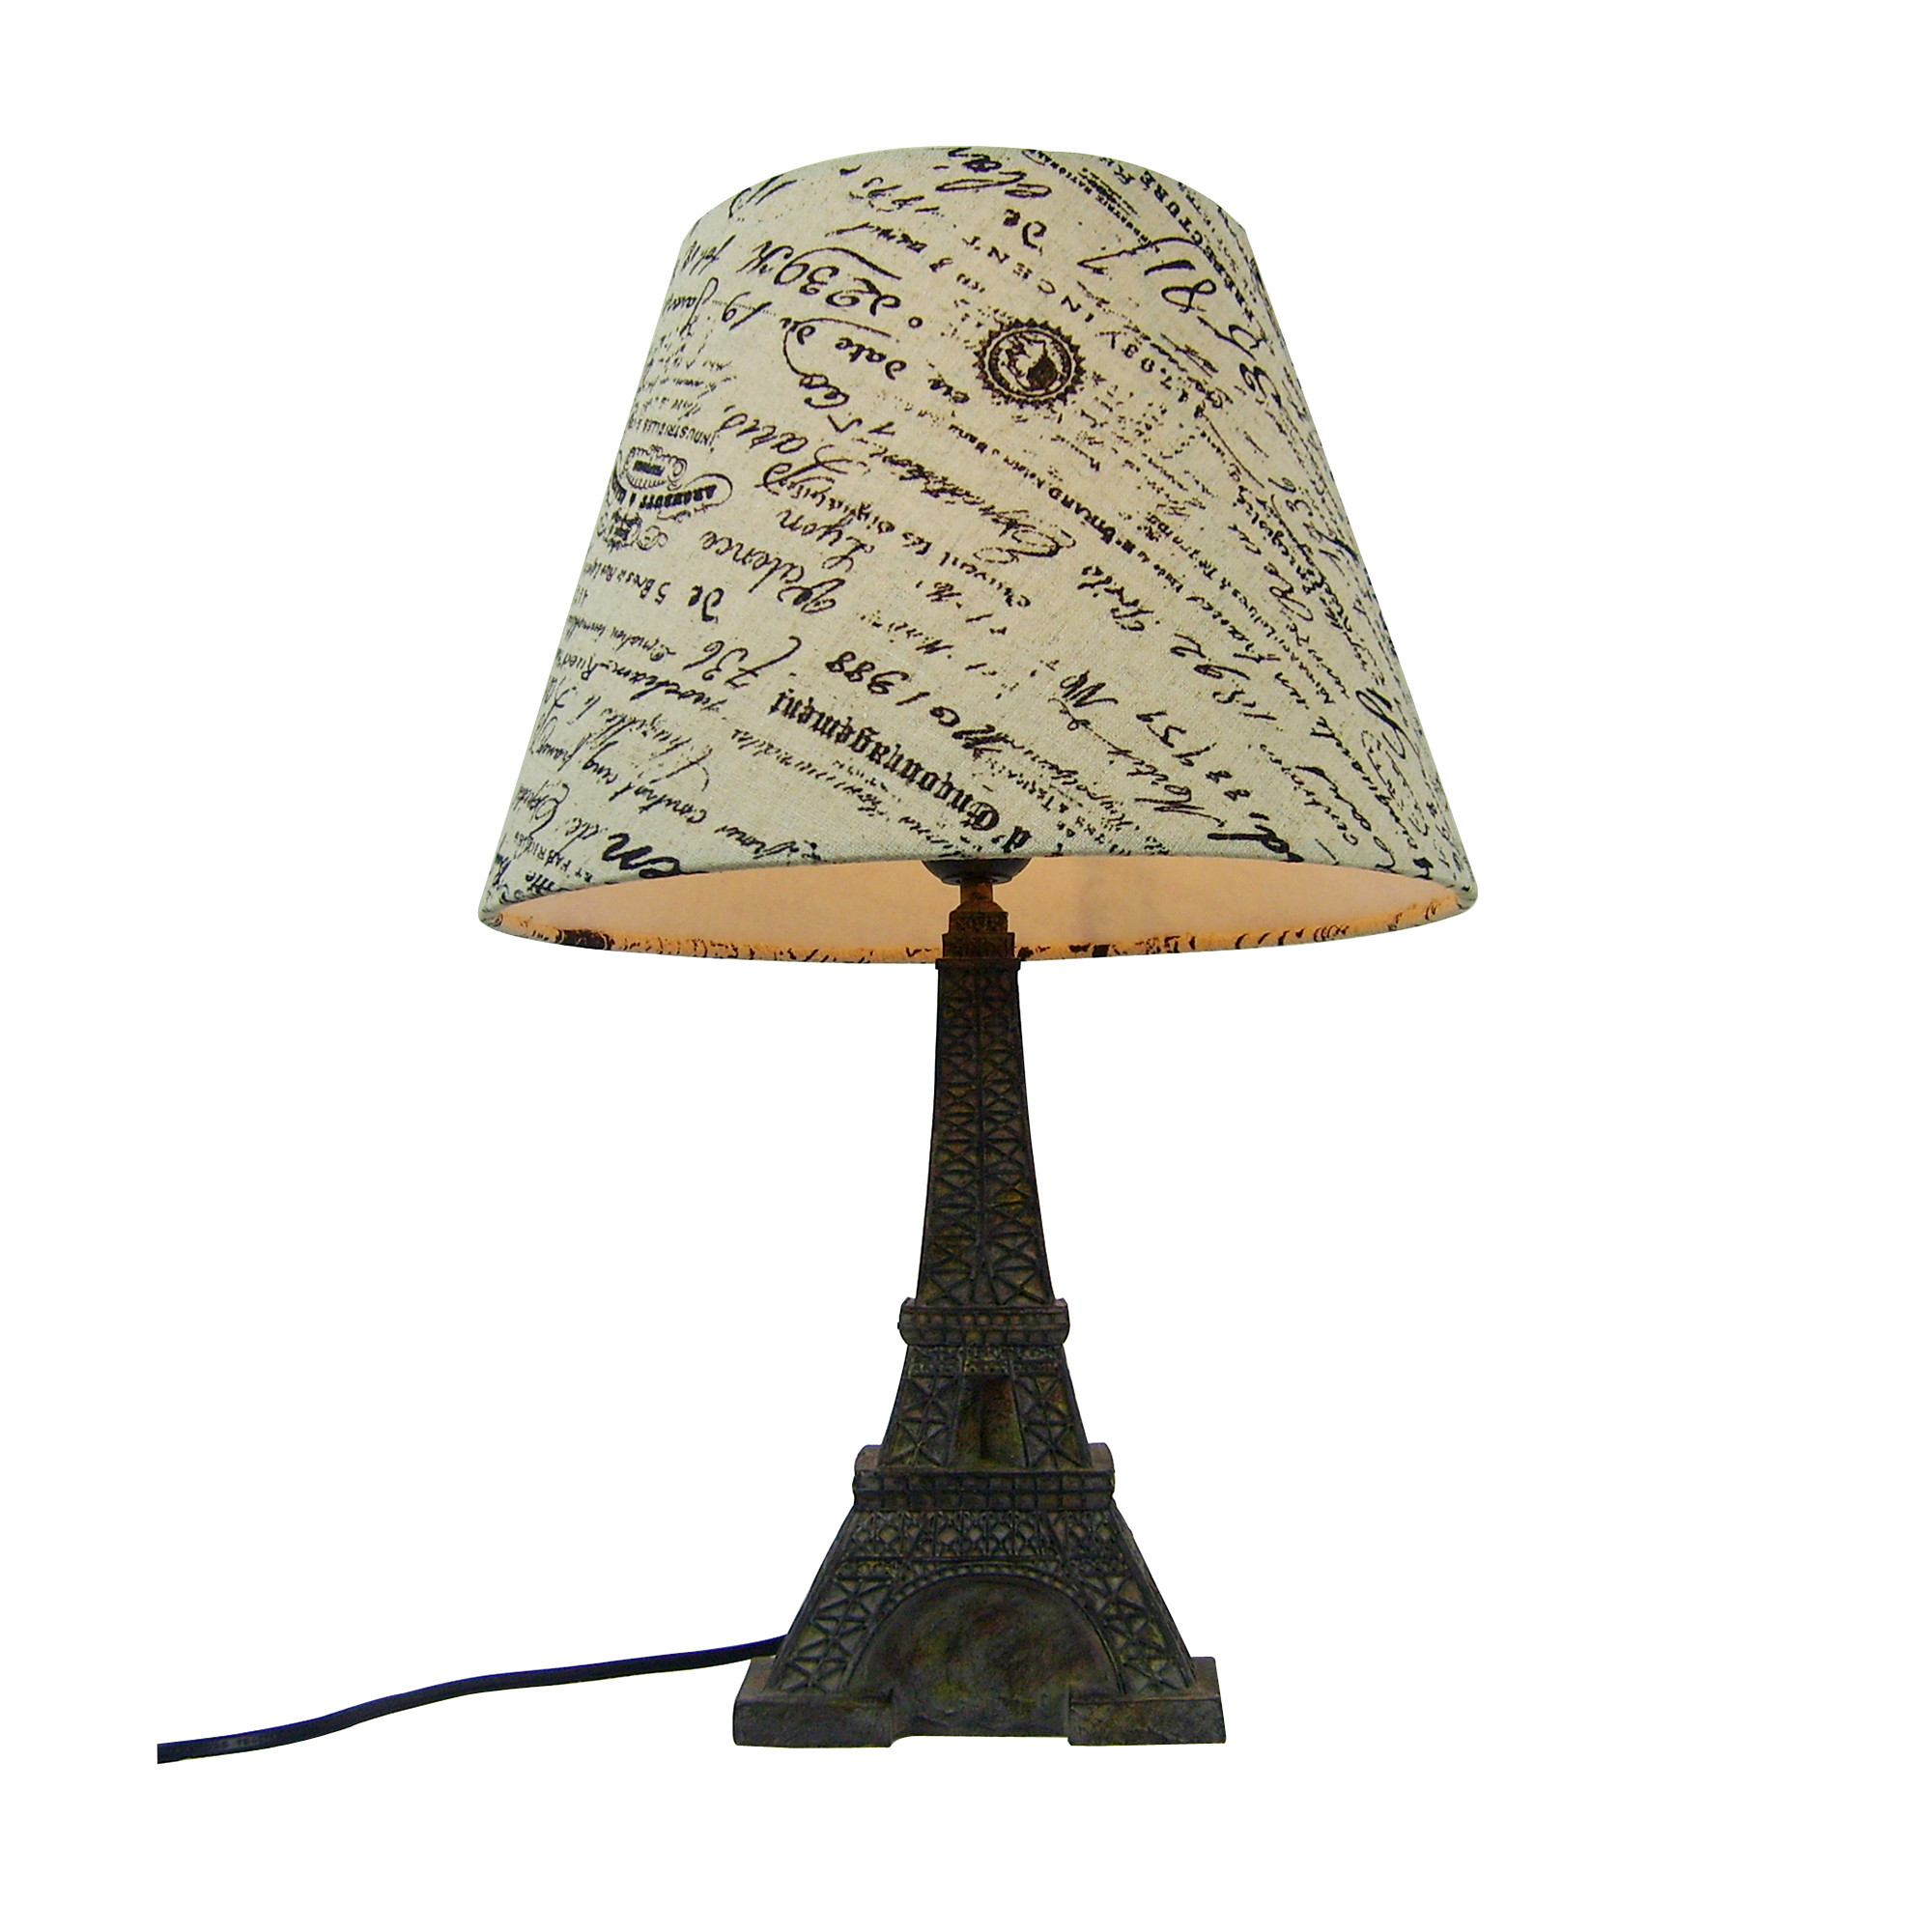 Simple Designs Eiffel Tower Paris Lamp With Shade All